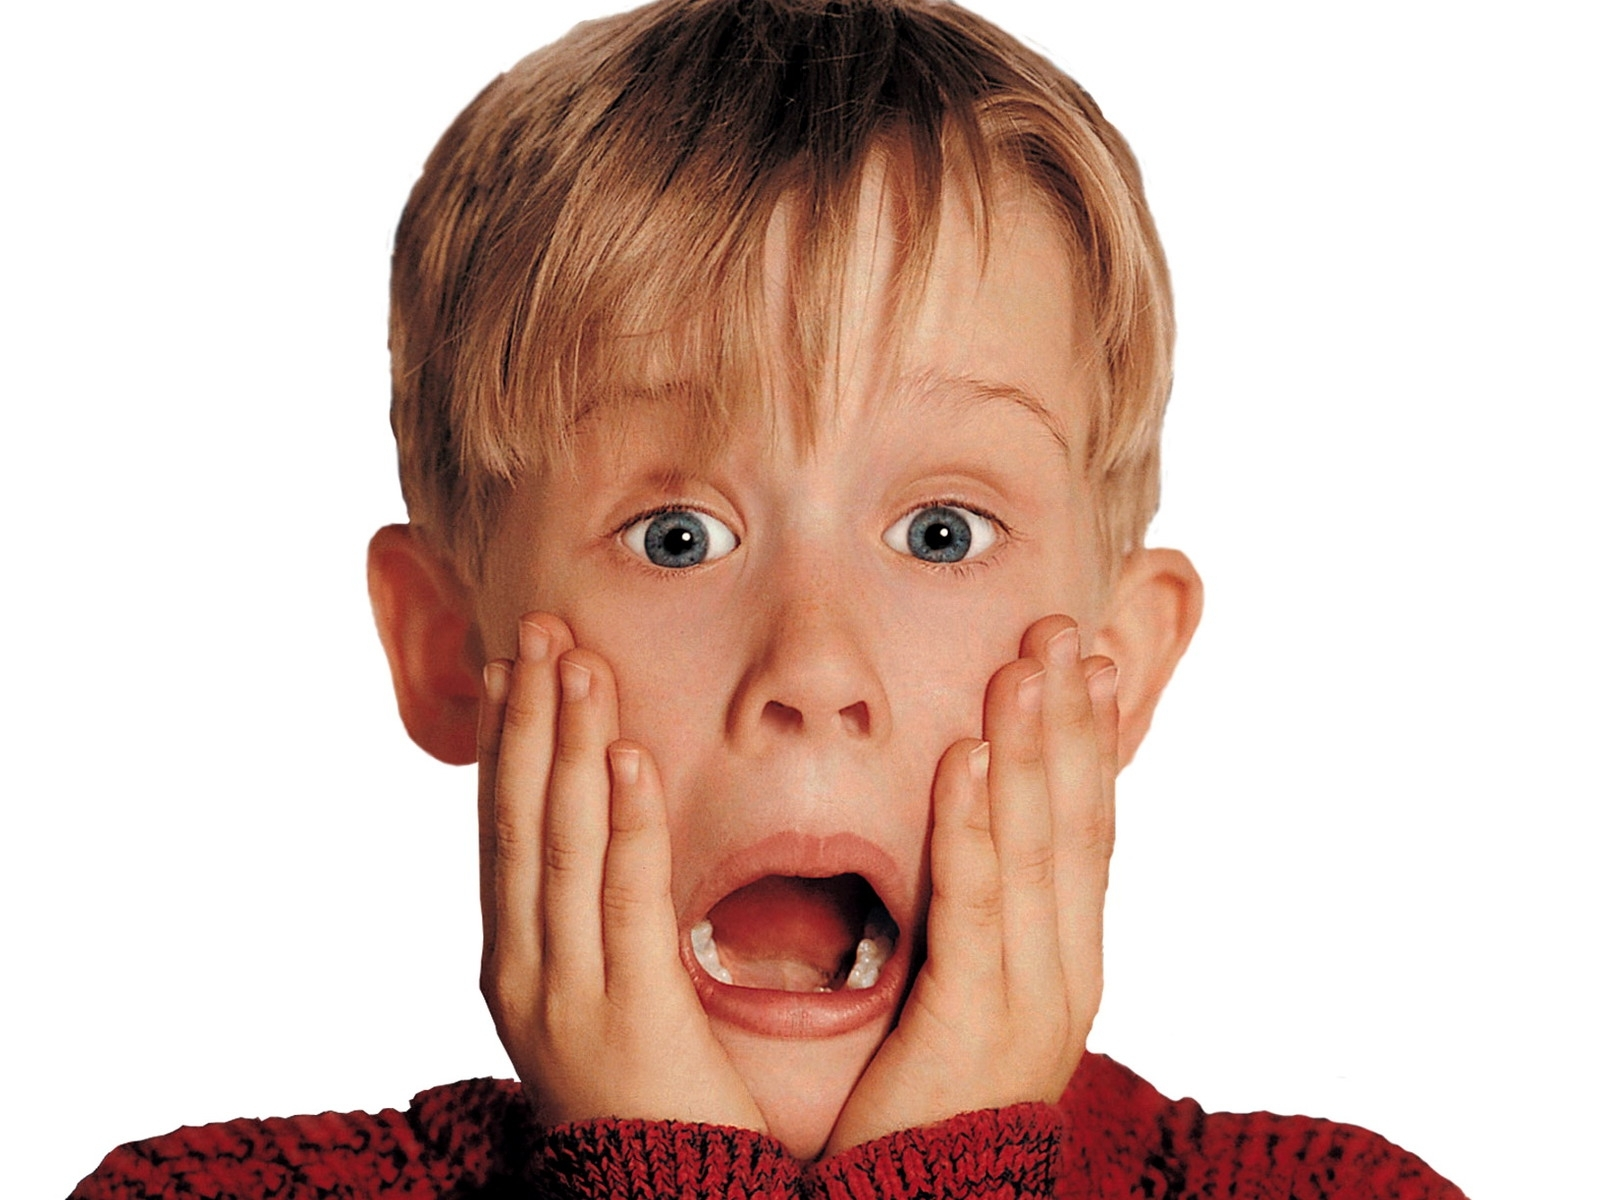 Surprised? Well, this is my surprised face. (Sidenote: Home Alone came out 24 years ago..and that makes me feel old.)